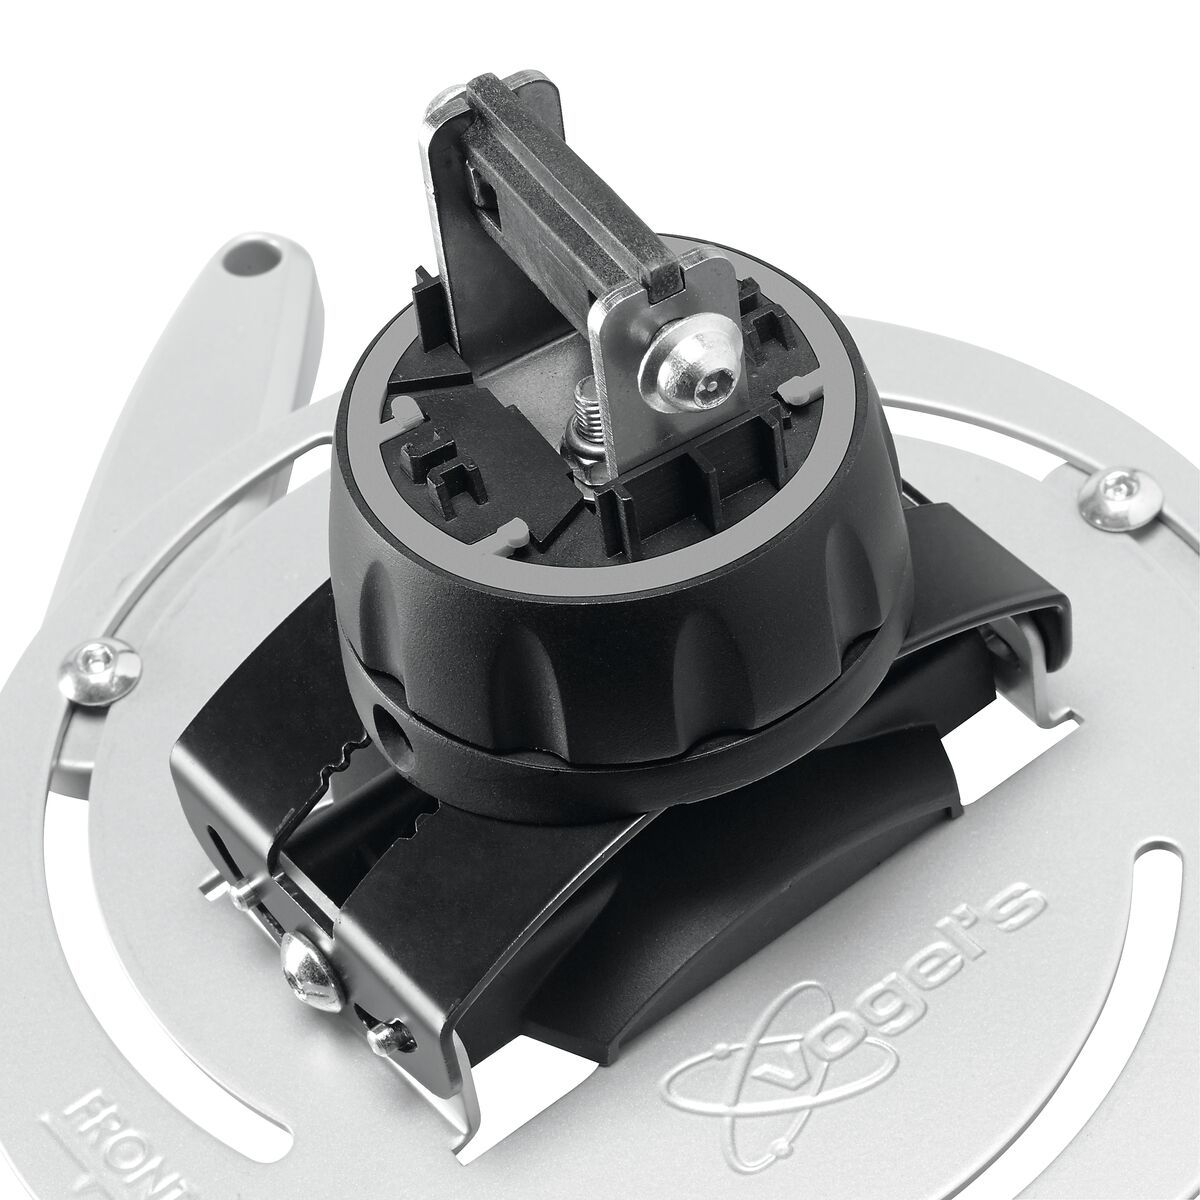 Vogel's PPC 2500 Projector ceiling mount - Detail